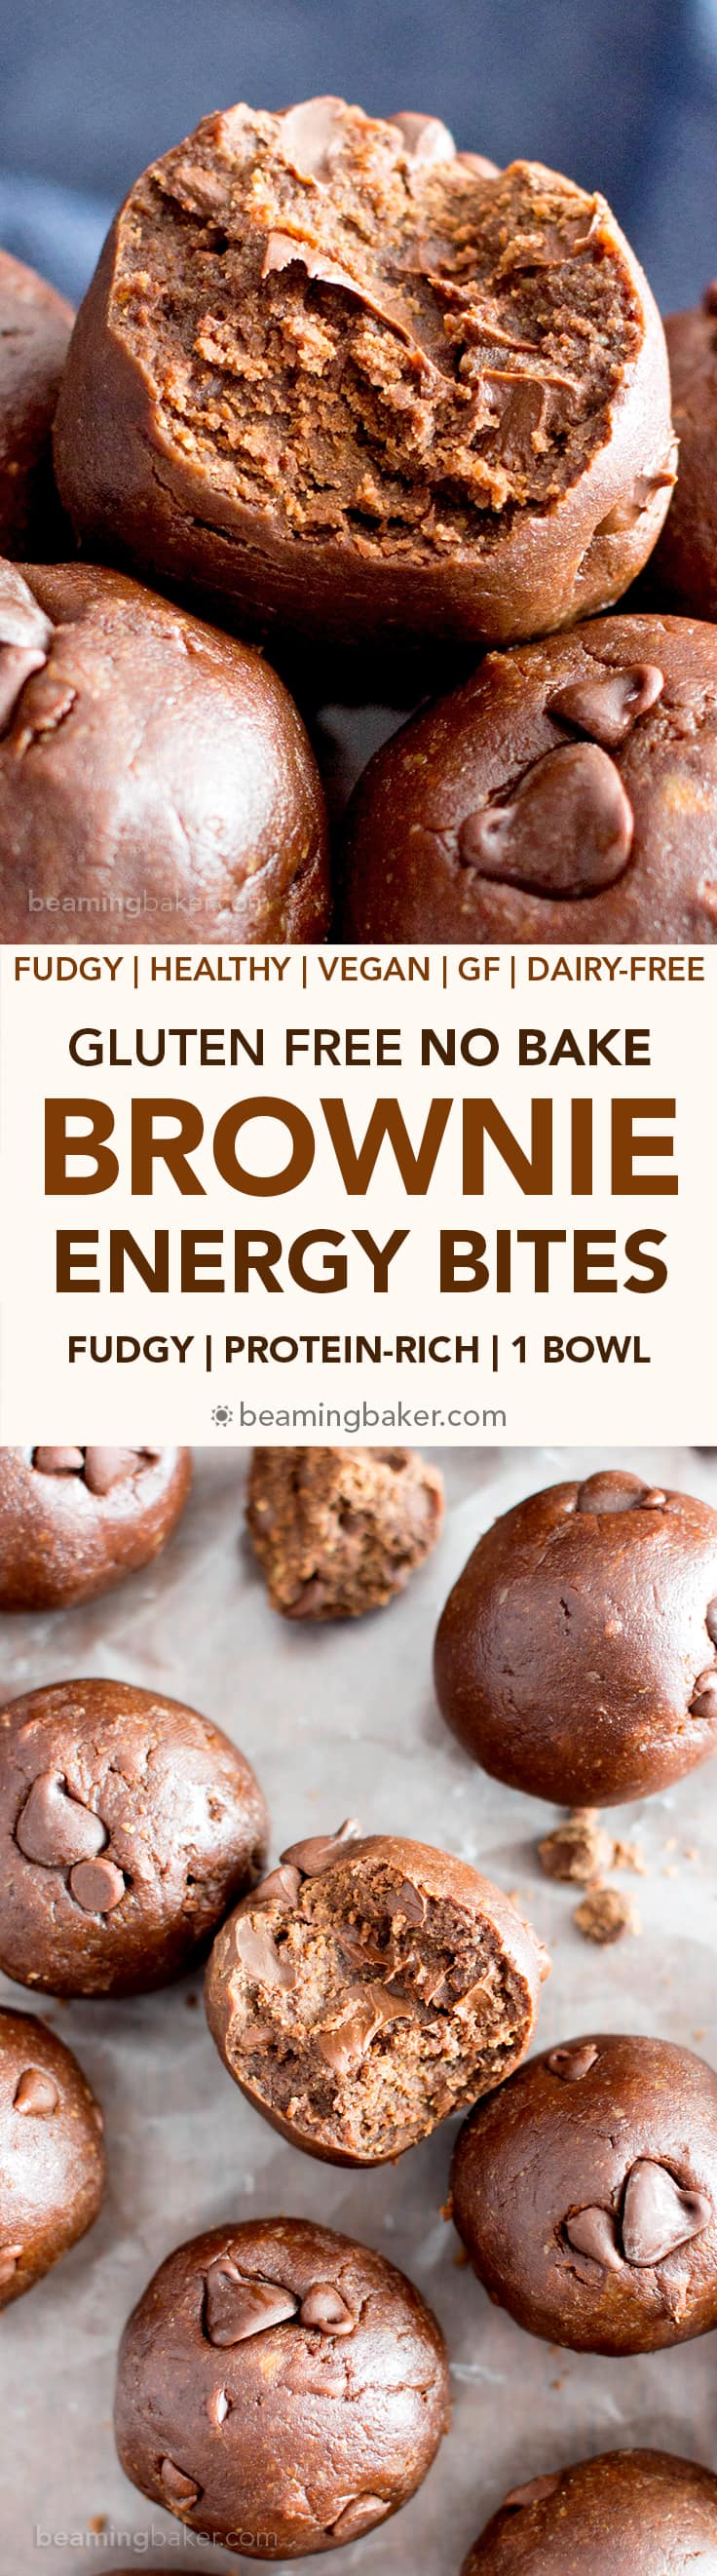 Gluten Free No Bake Brownie Energy Bites (V, GF): a one bowl recipe for fudgy, rich, 7-ingredient no bake bites that taste just like decadent brownies. #Vegan #ProteinPacked #GlutenFree #DairyFree | BeamingBaker.com